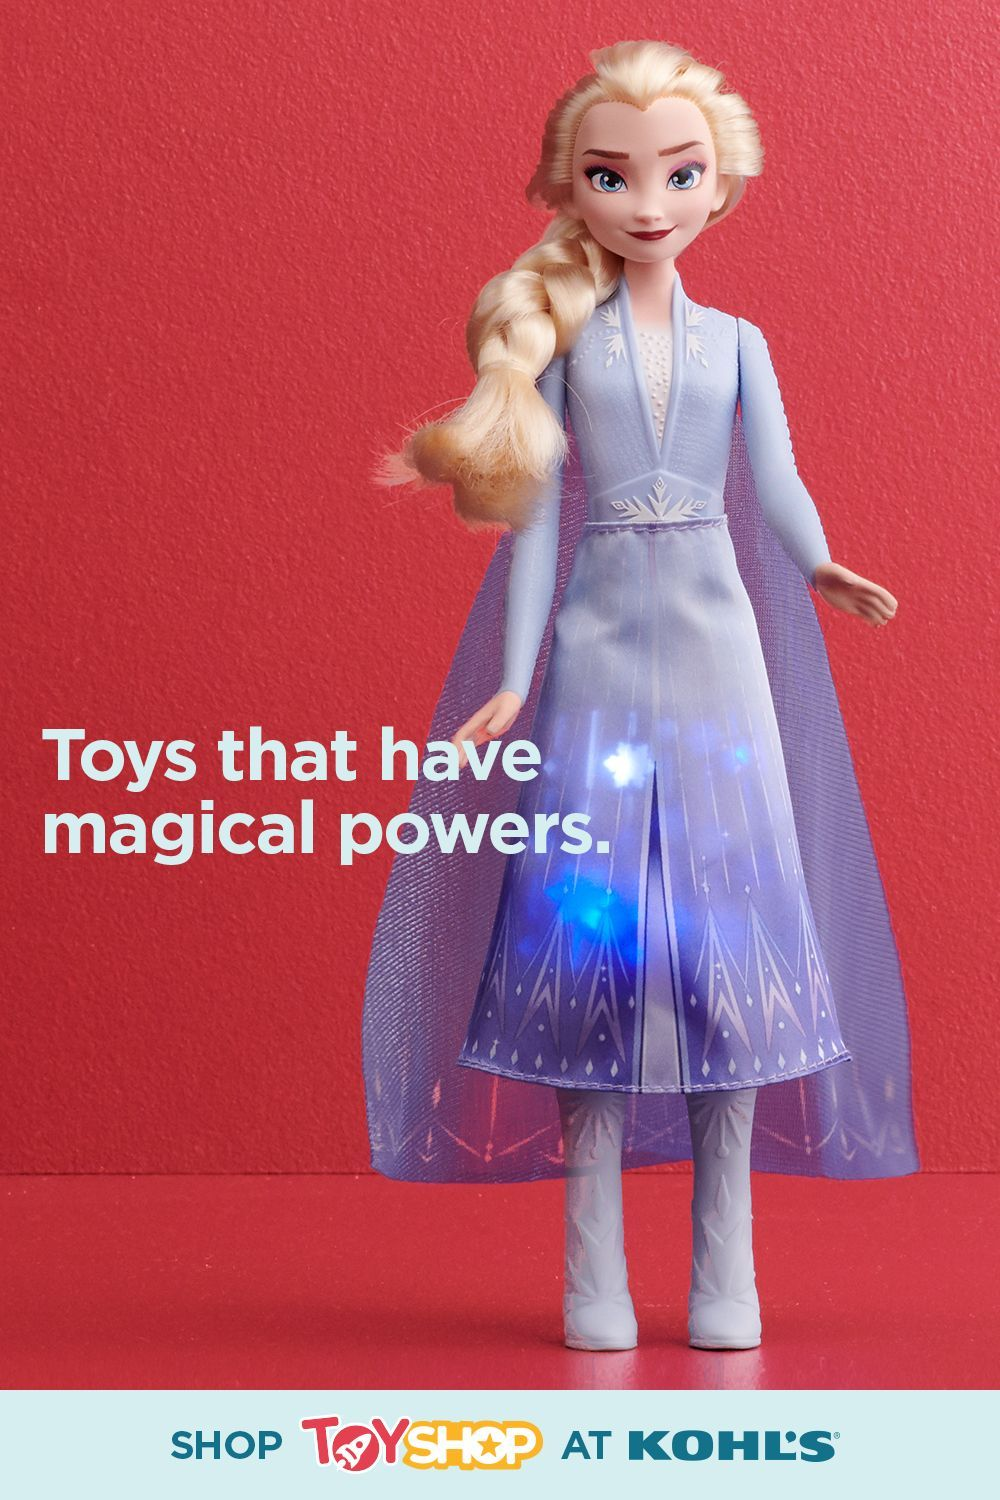 Find all the musthave Frozen toys at Kohl's. Let it glow